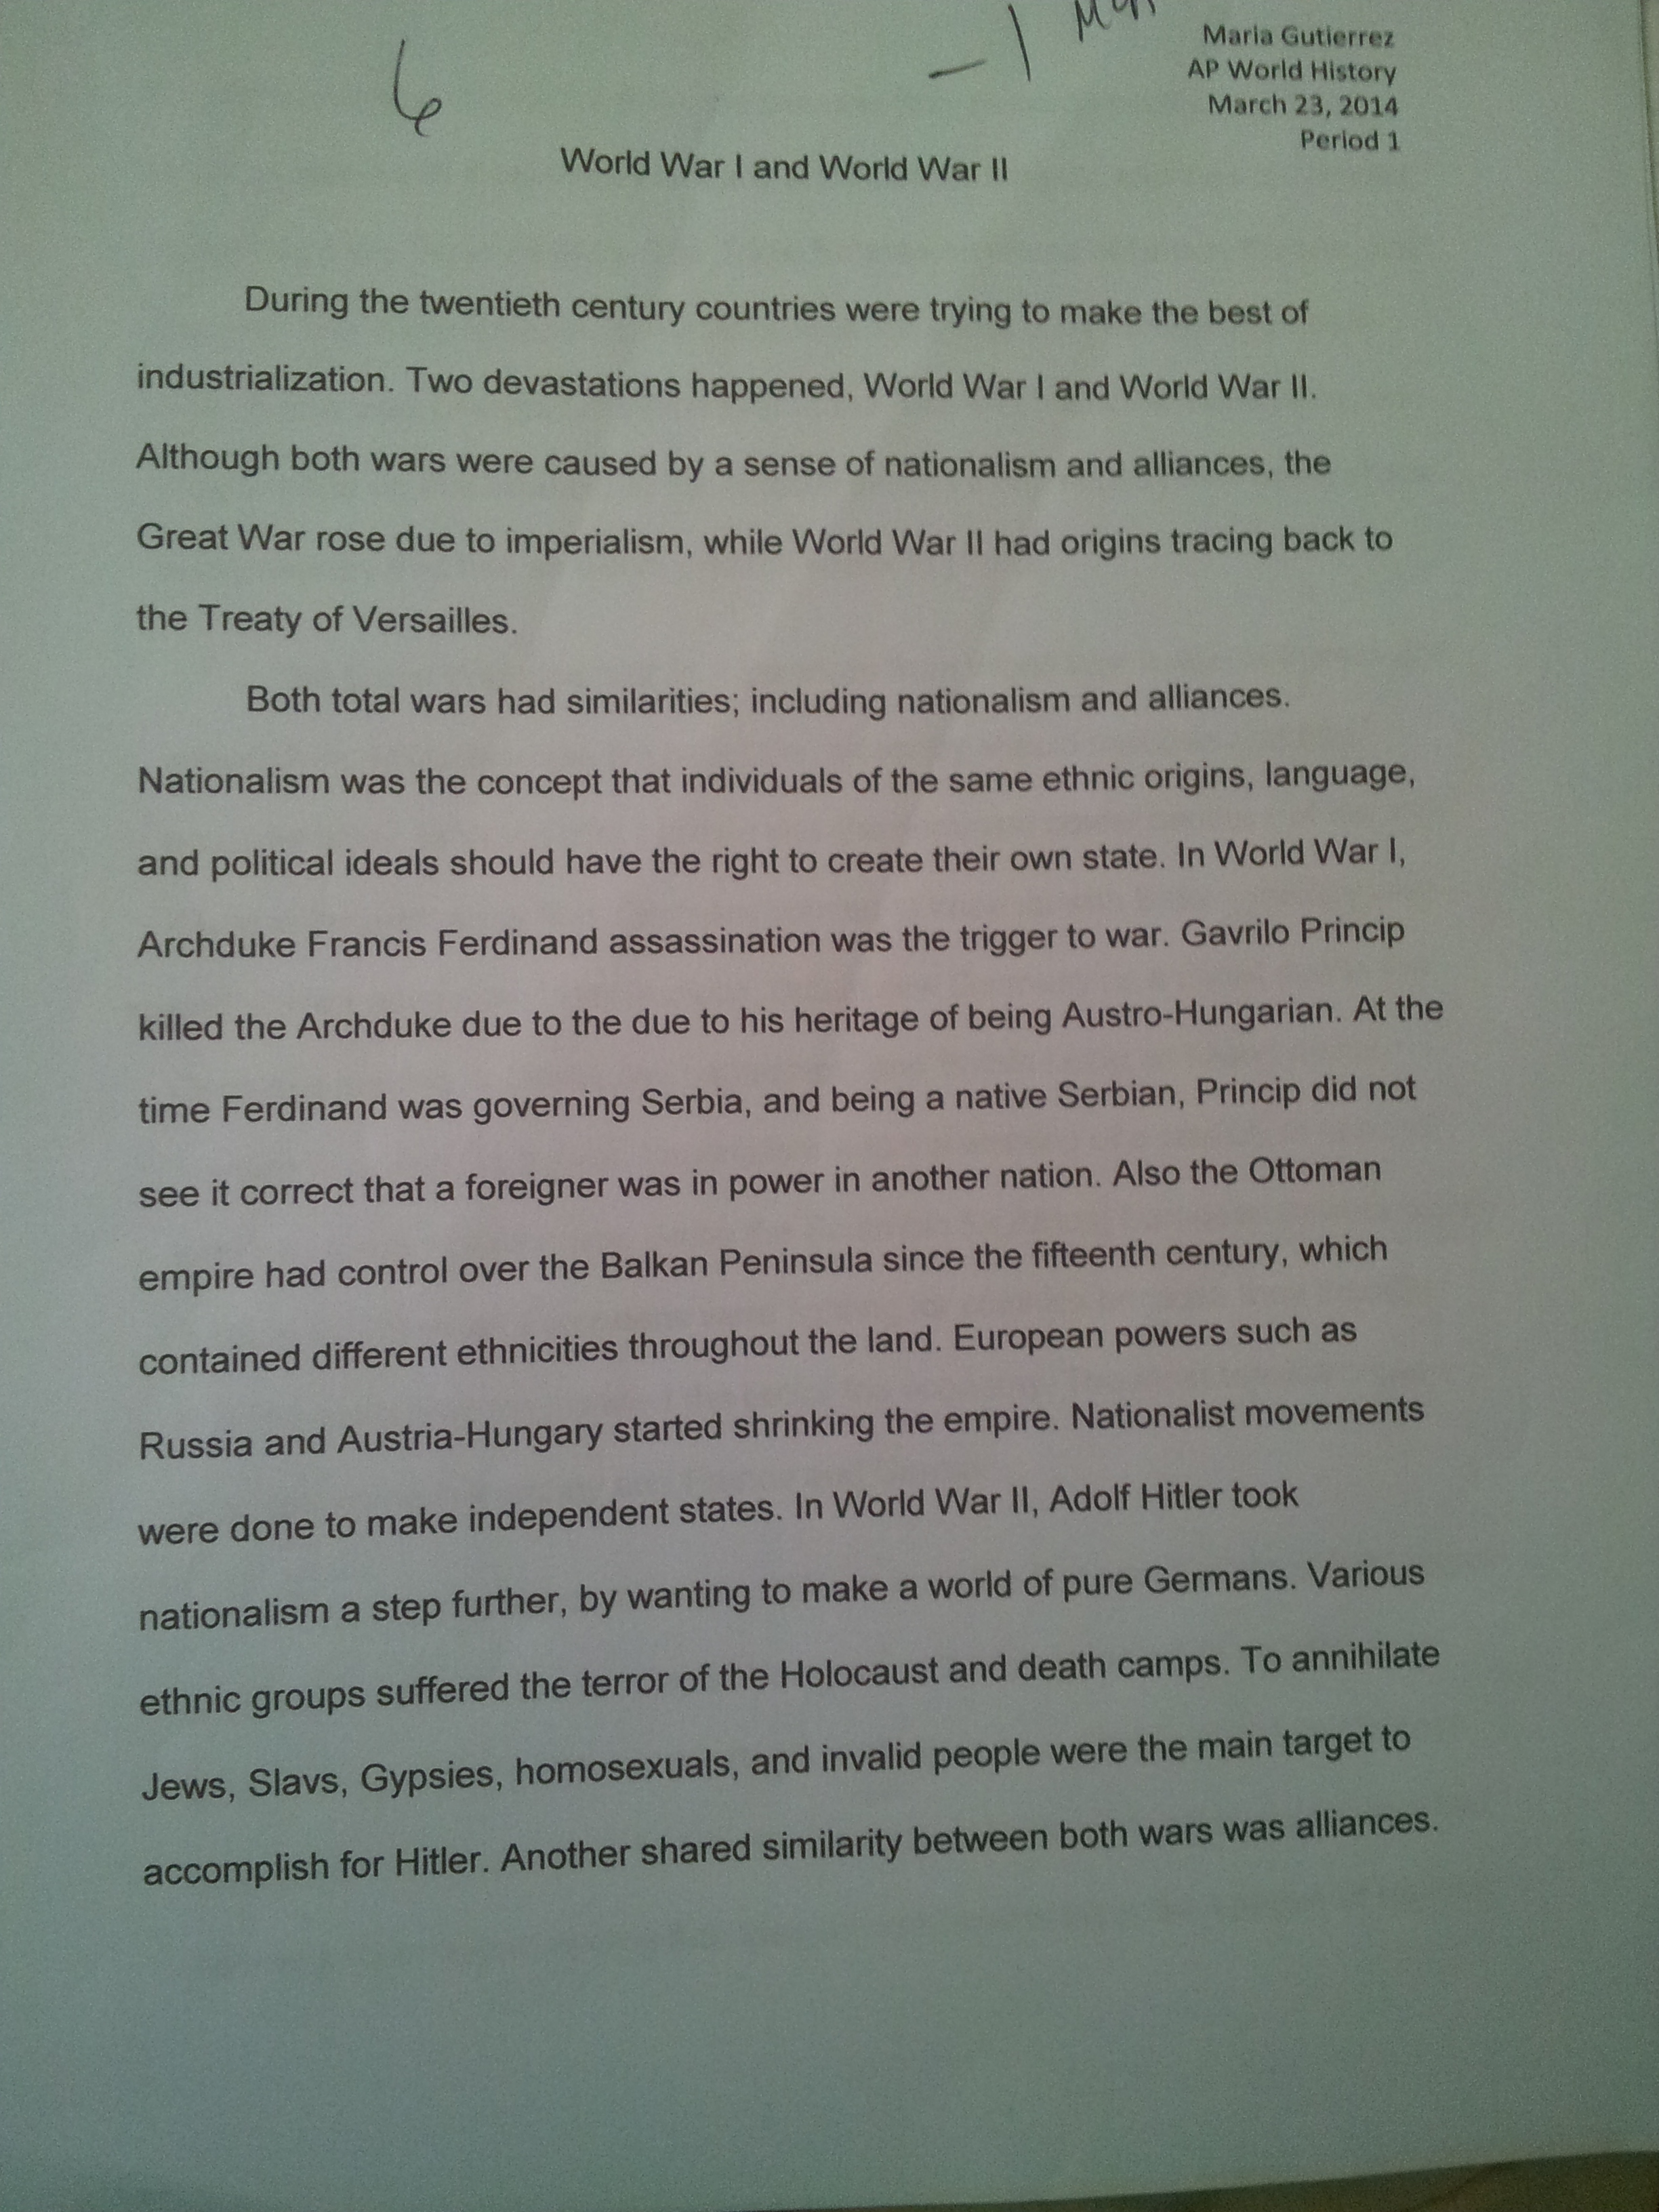 Great man theory essay